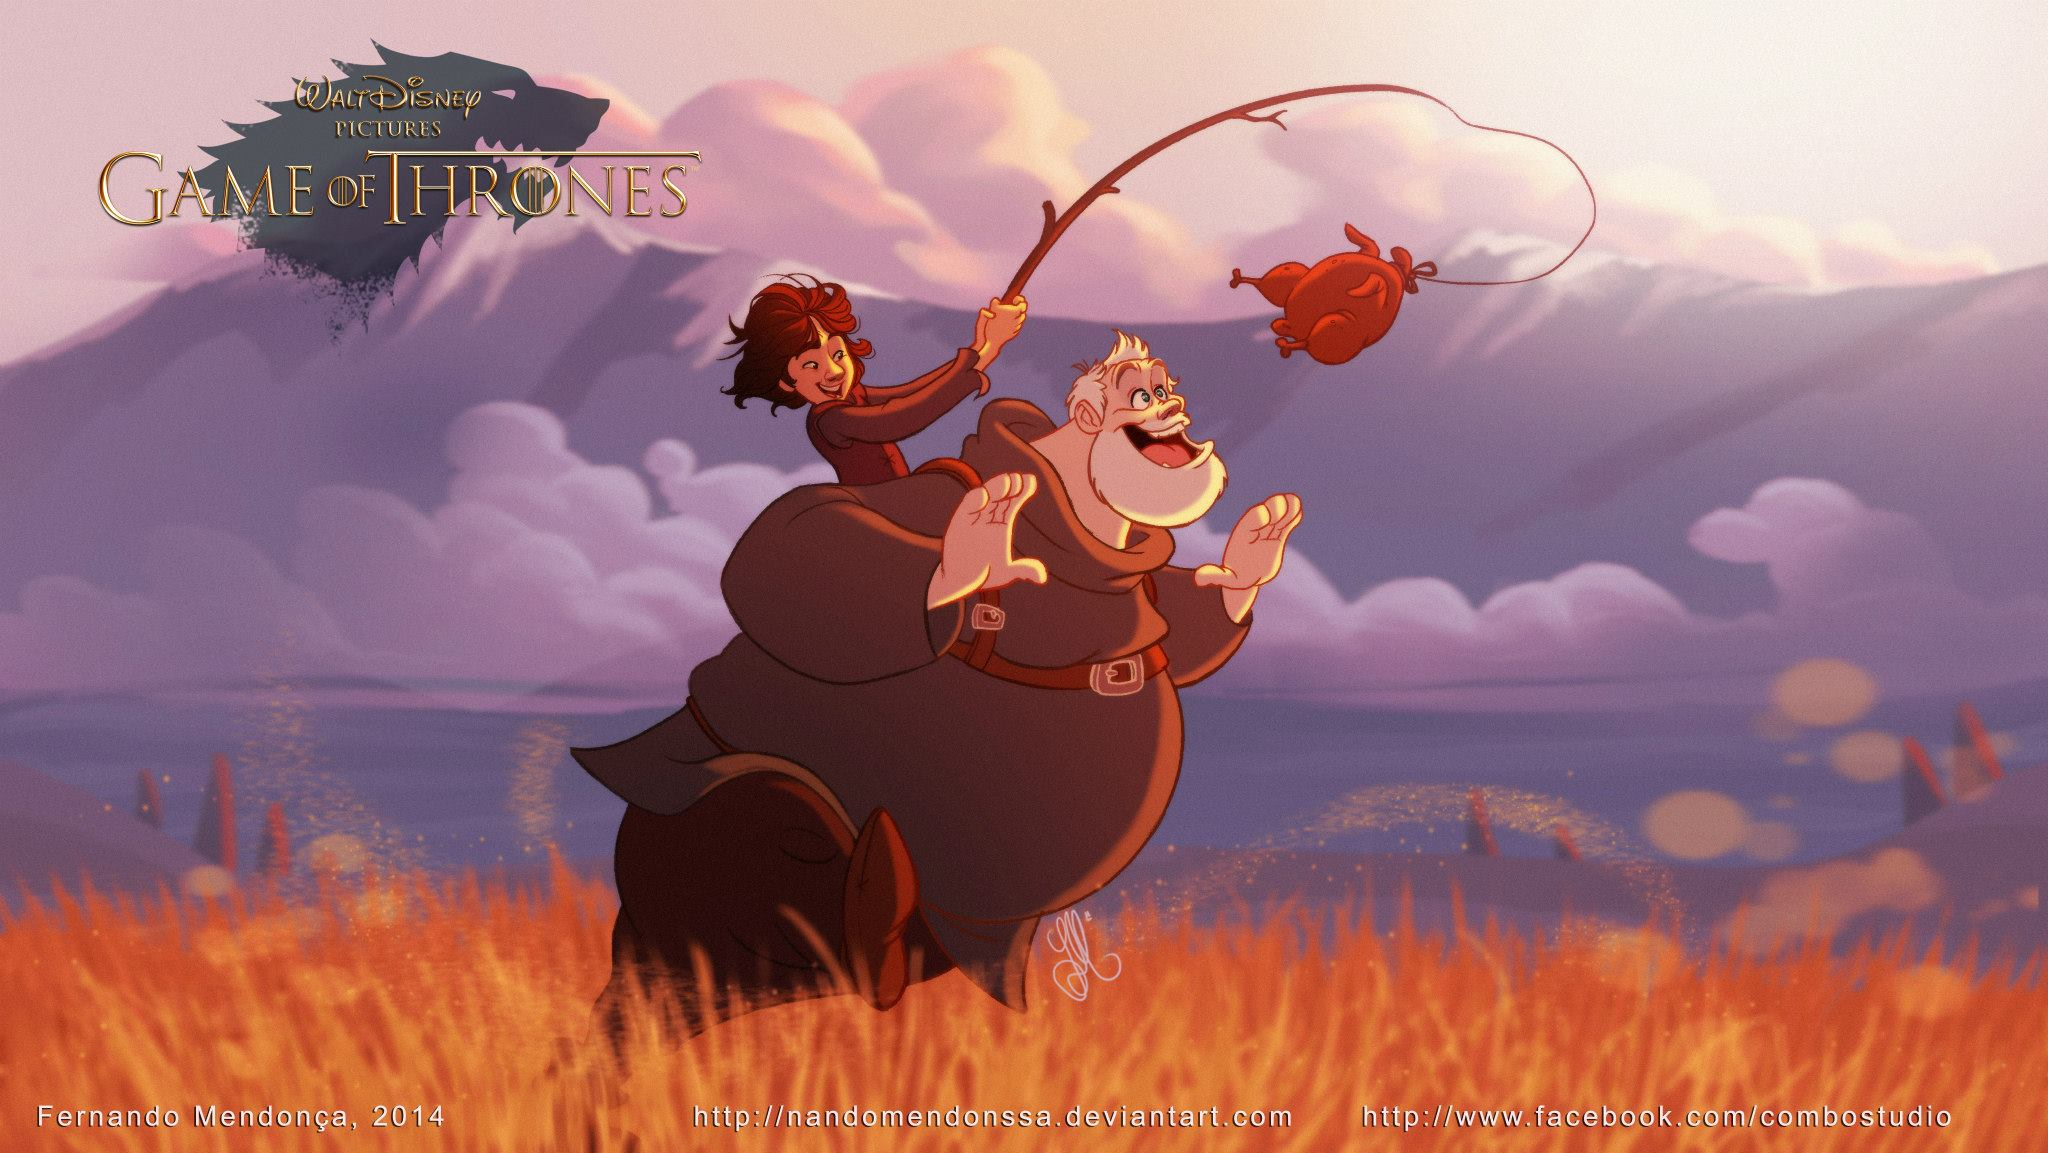 Disney Game Of Thrones Bran Stark & Hodor